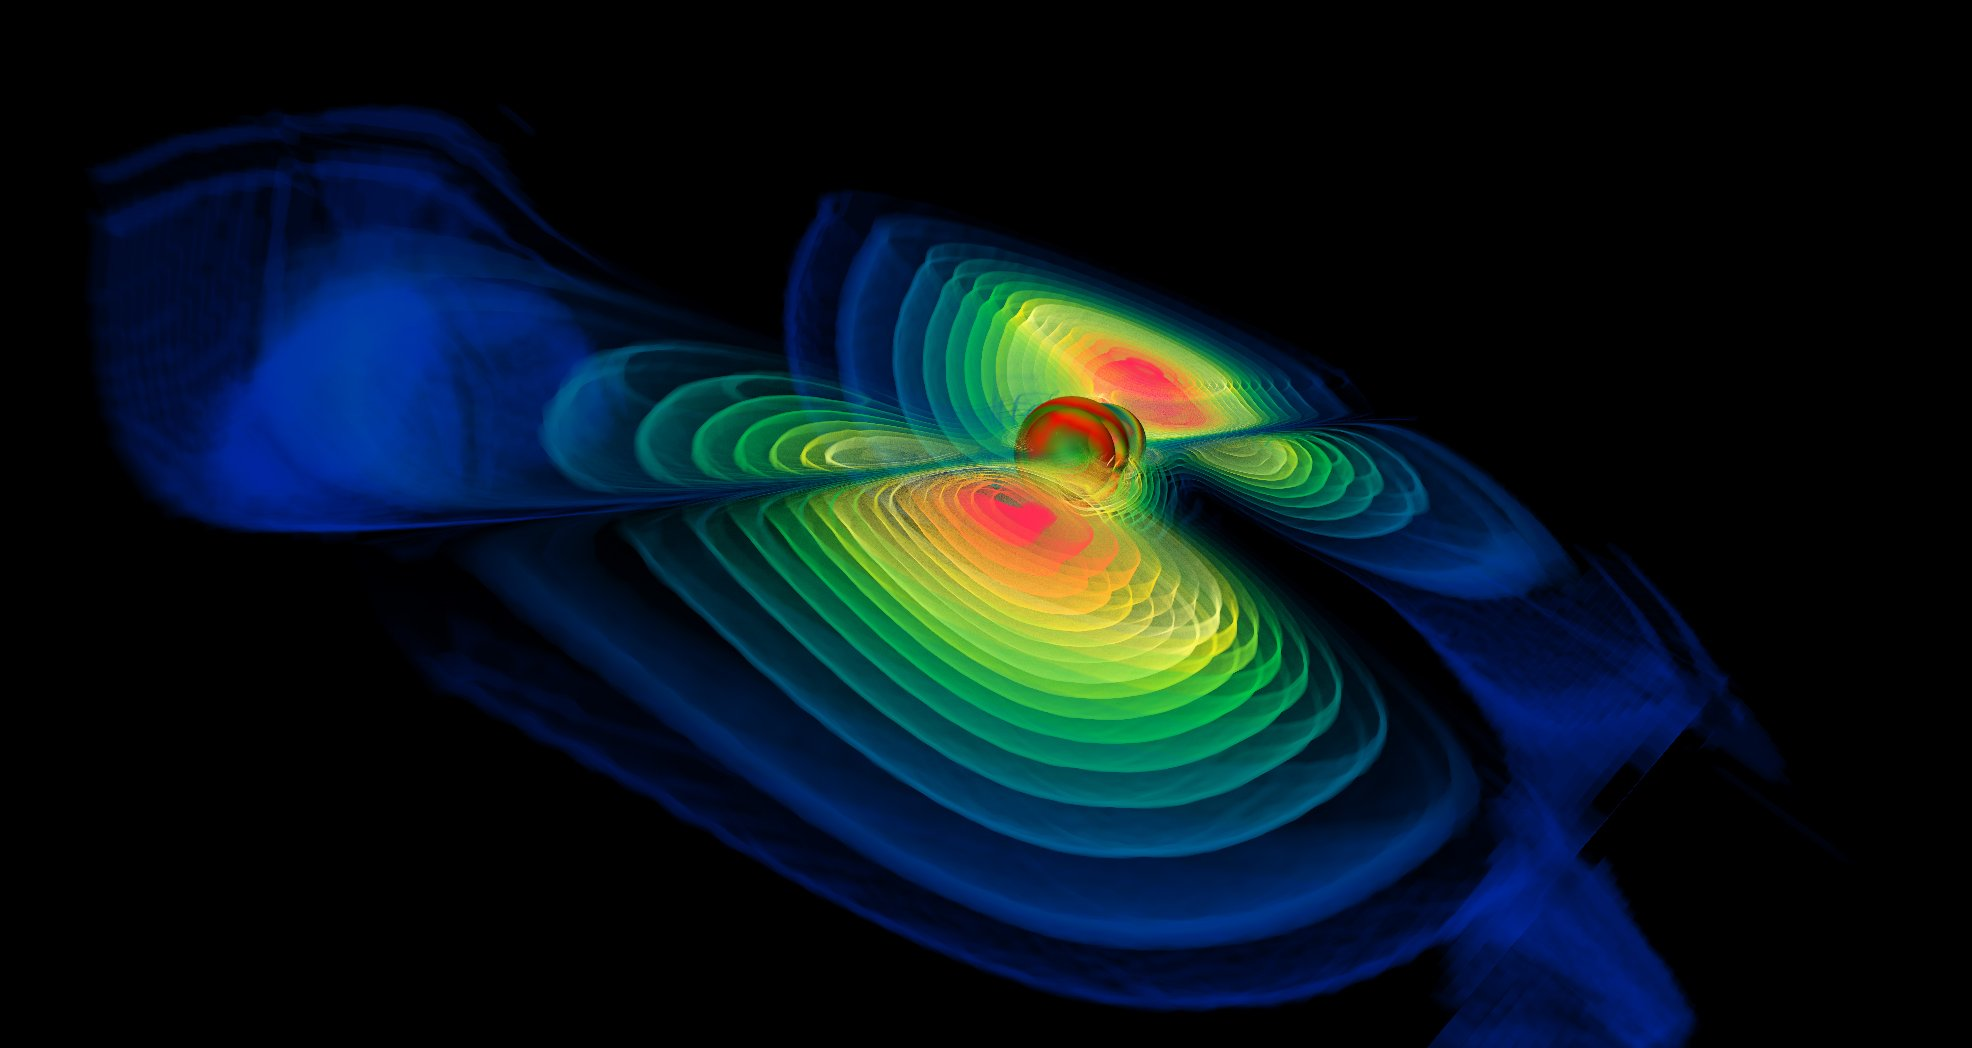 gravitational-waves-black-holes-ligo-nsf